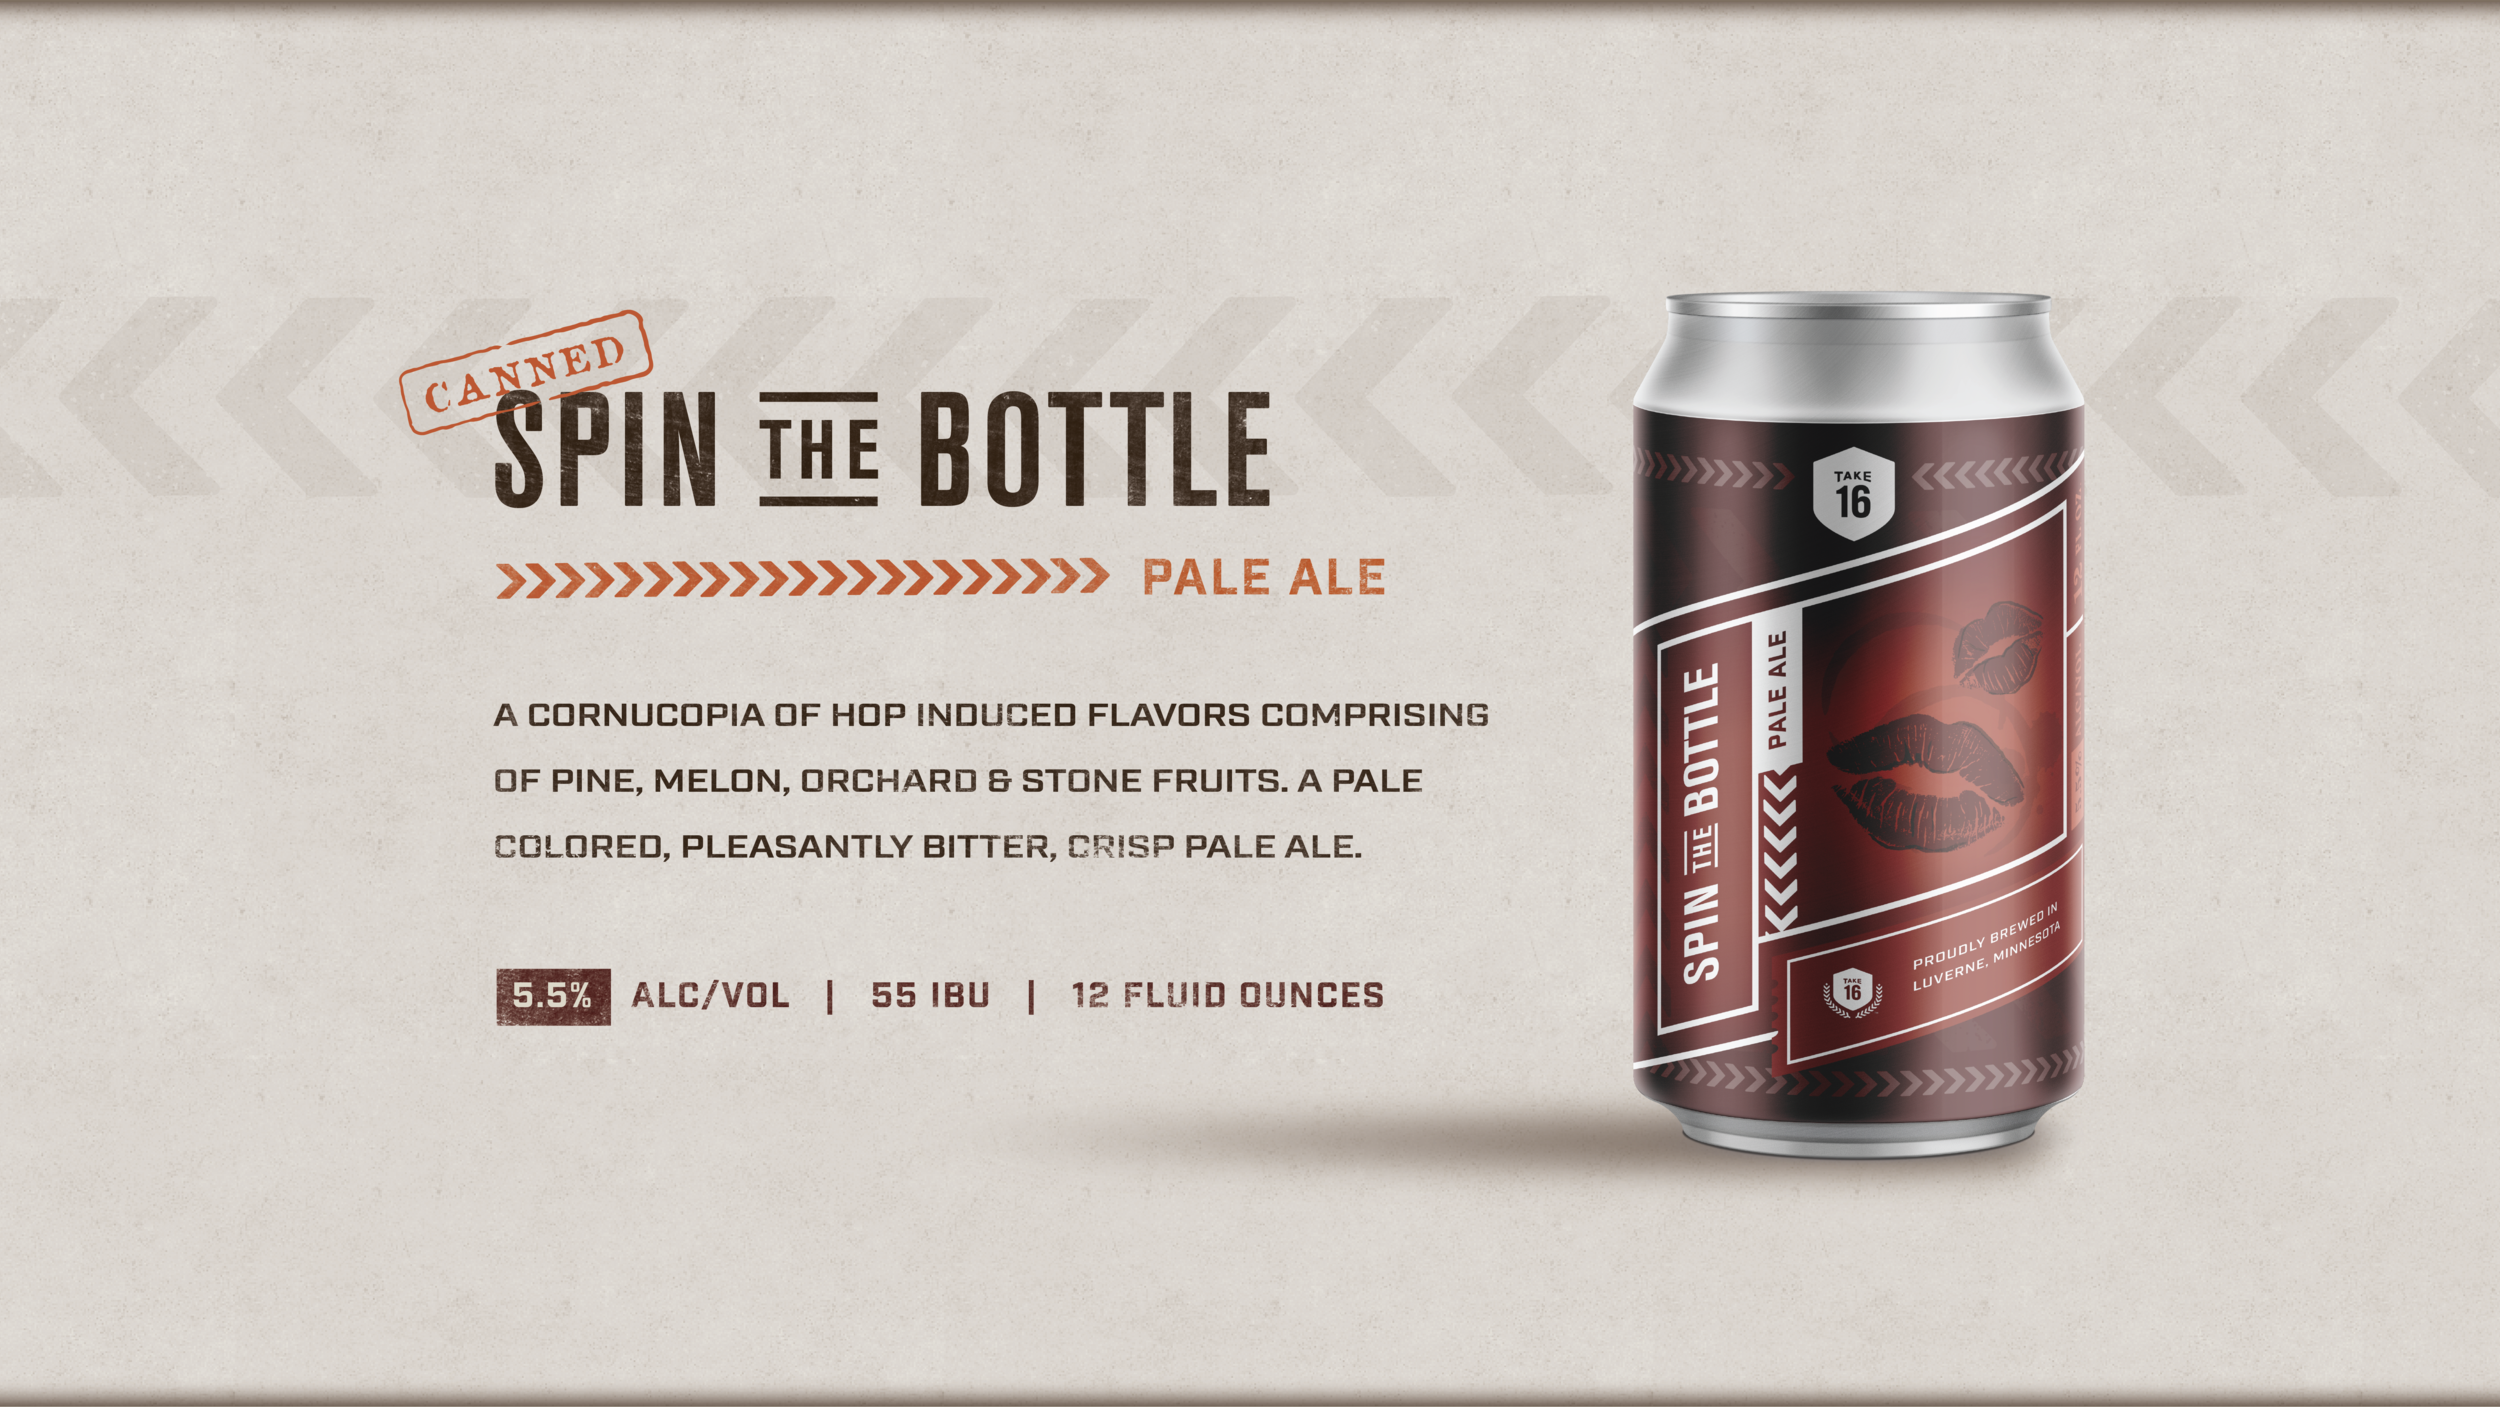 LBY-016.IDE.bgs.BeerGallery_12ozCanLabel_SpinTheBottle.A.1.png